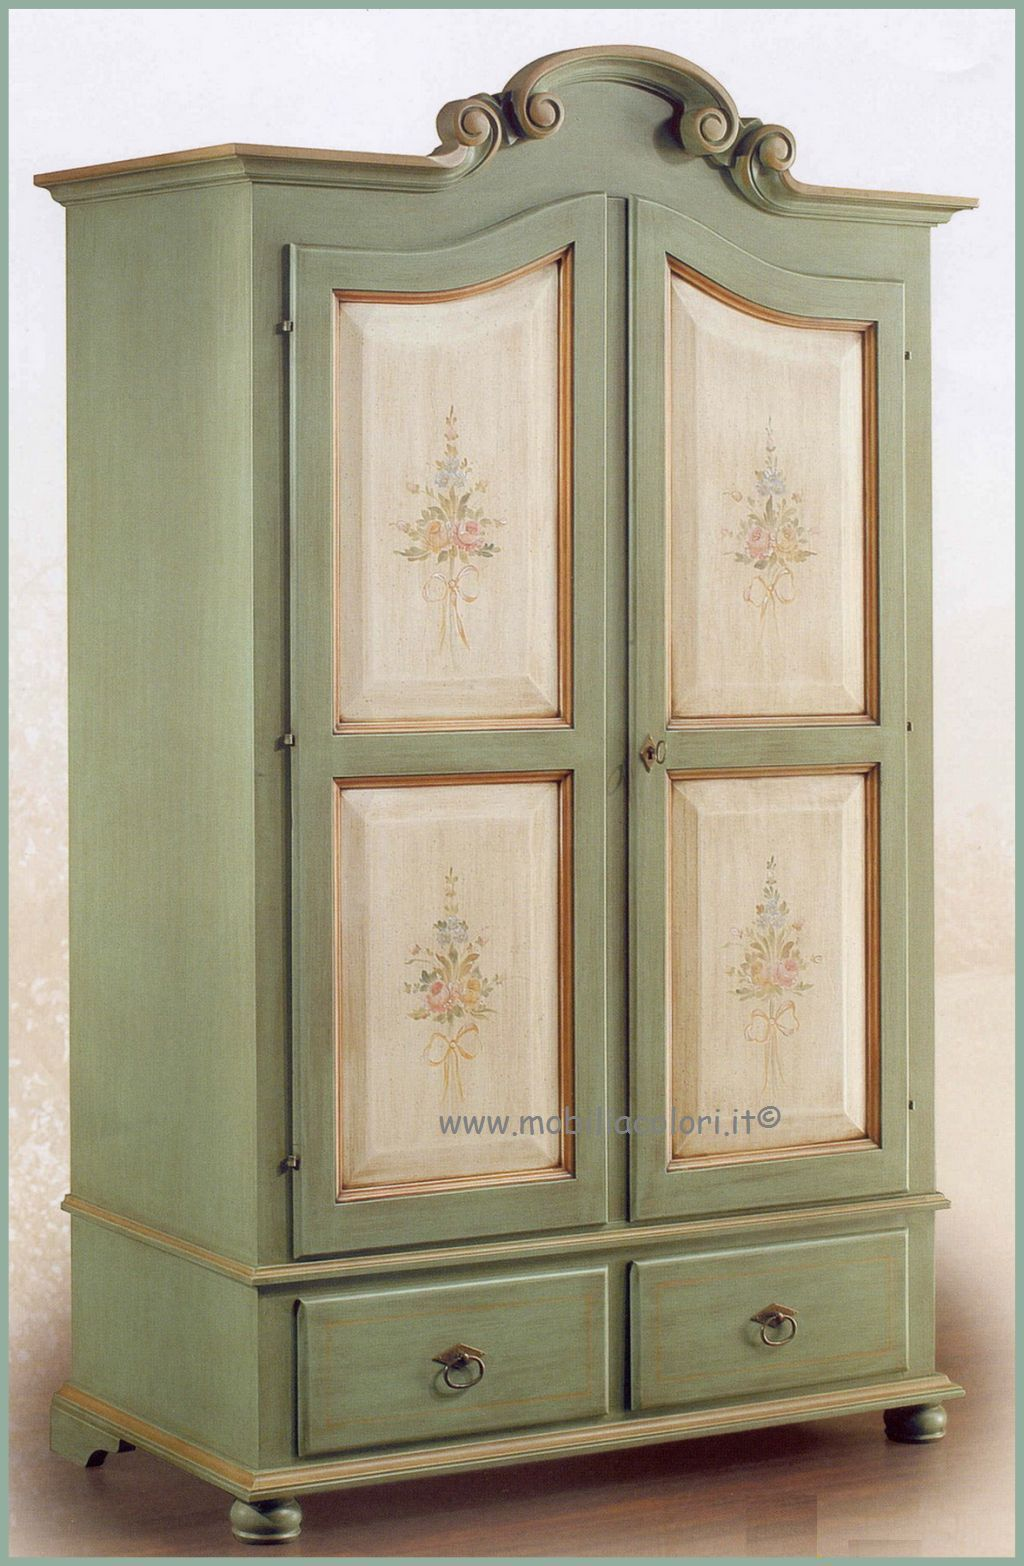 Armadio bicolore fiori decorato armadi shabby pinterest painted furniture furniture e armoire - Decoupage mobili cucina ...